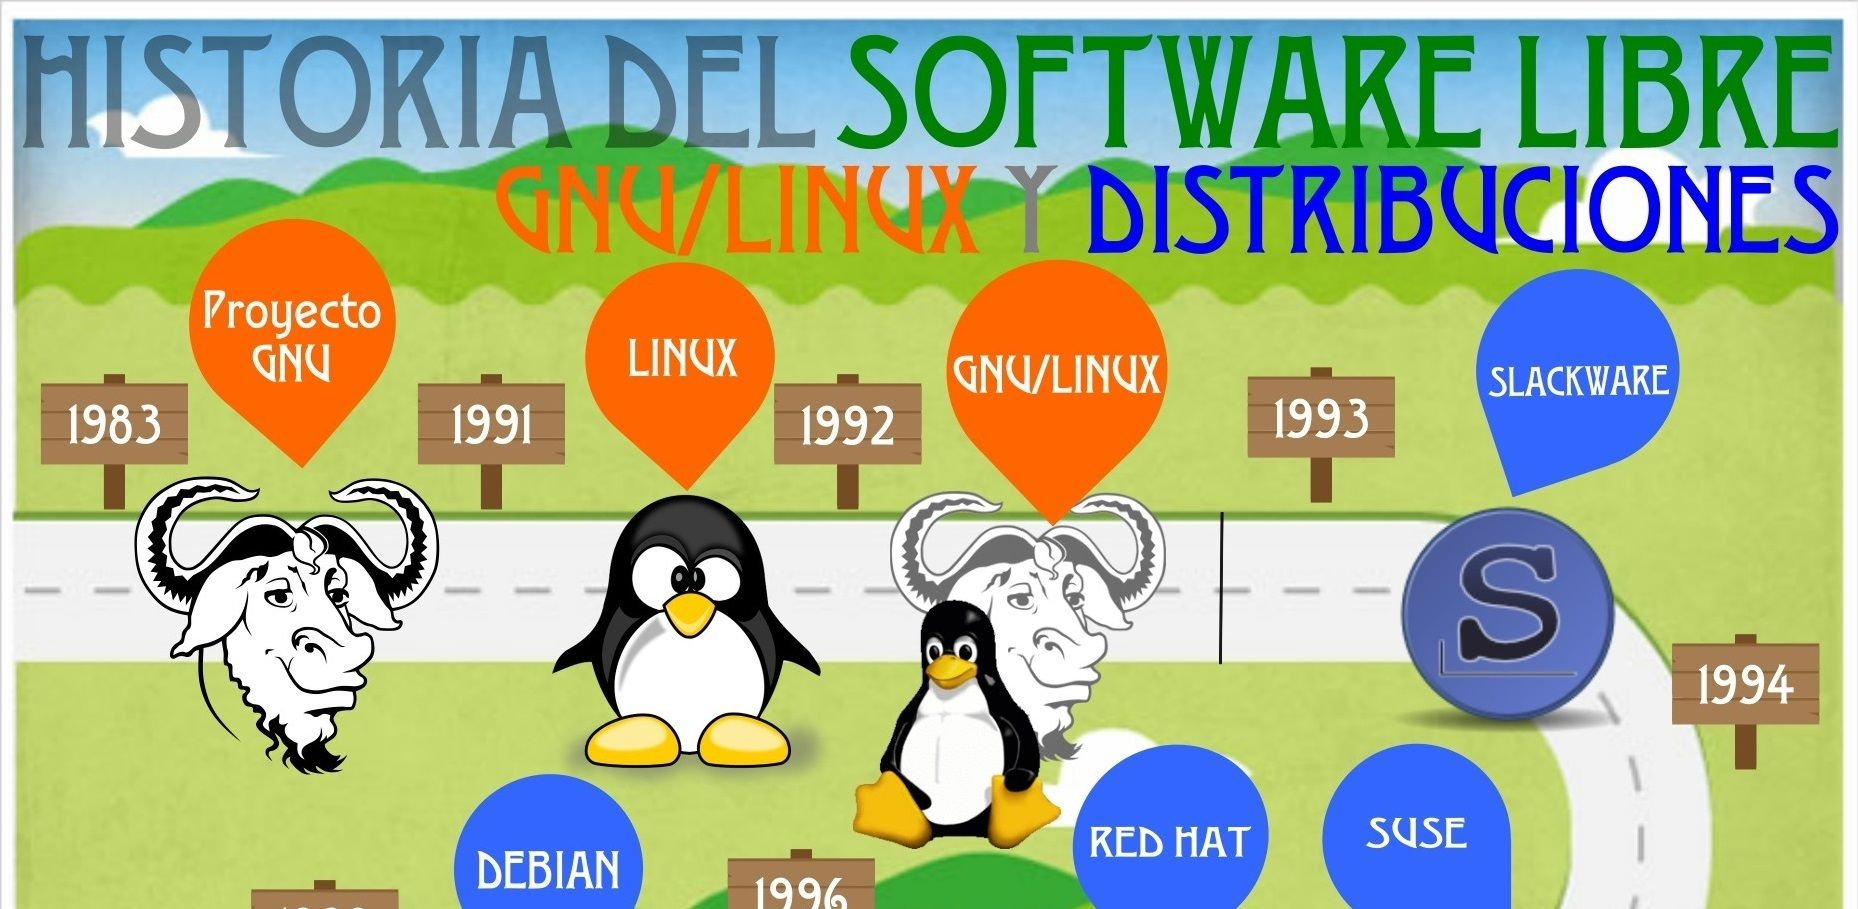 Historia Del Software Libre Historia Del Software Libre Gnu Linux Y Distribuciones Software